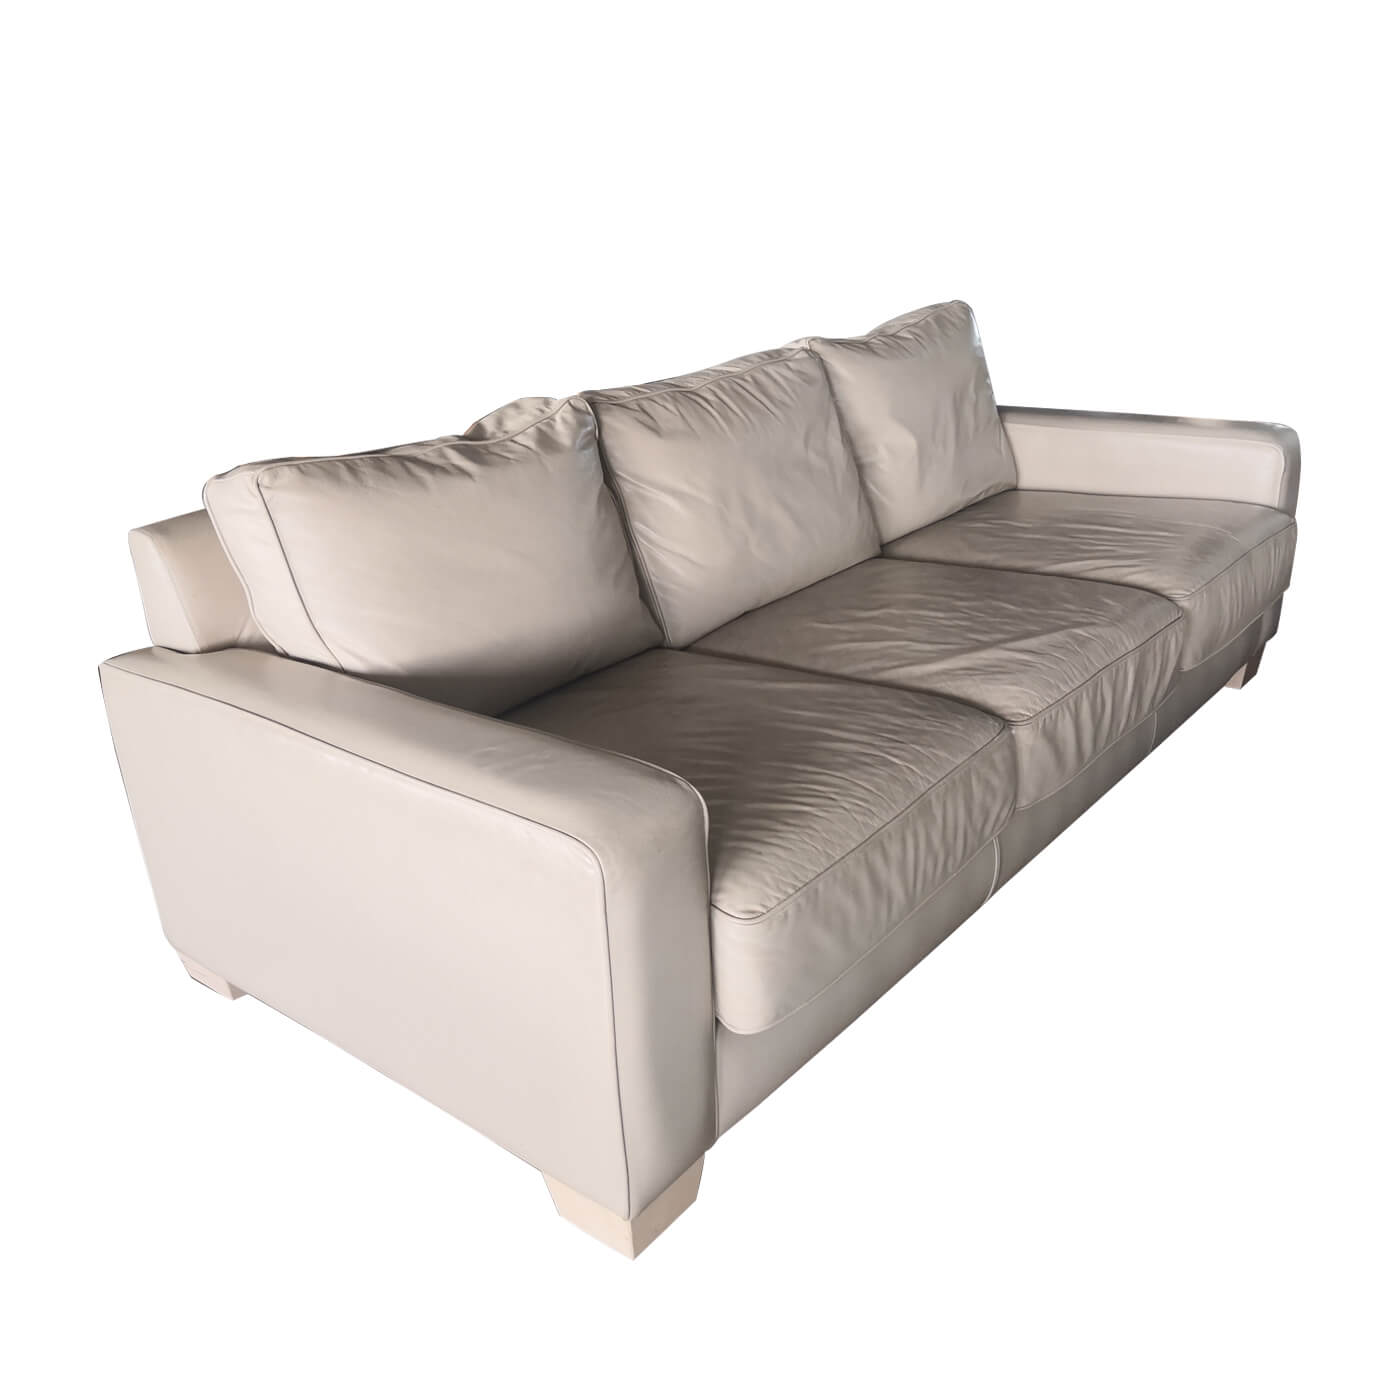 Jardan Sofa, 3 seater inc ream leather, second hand